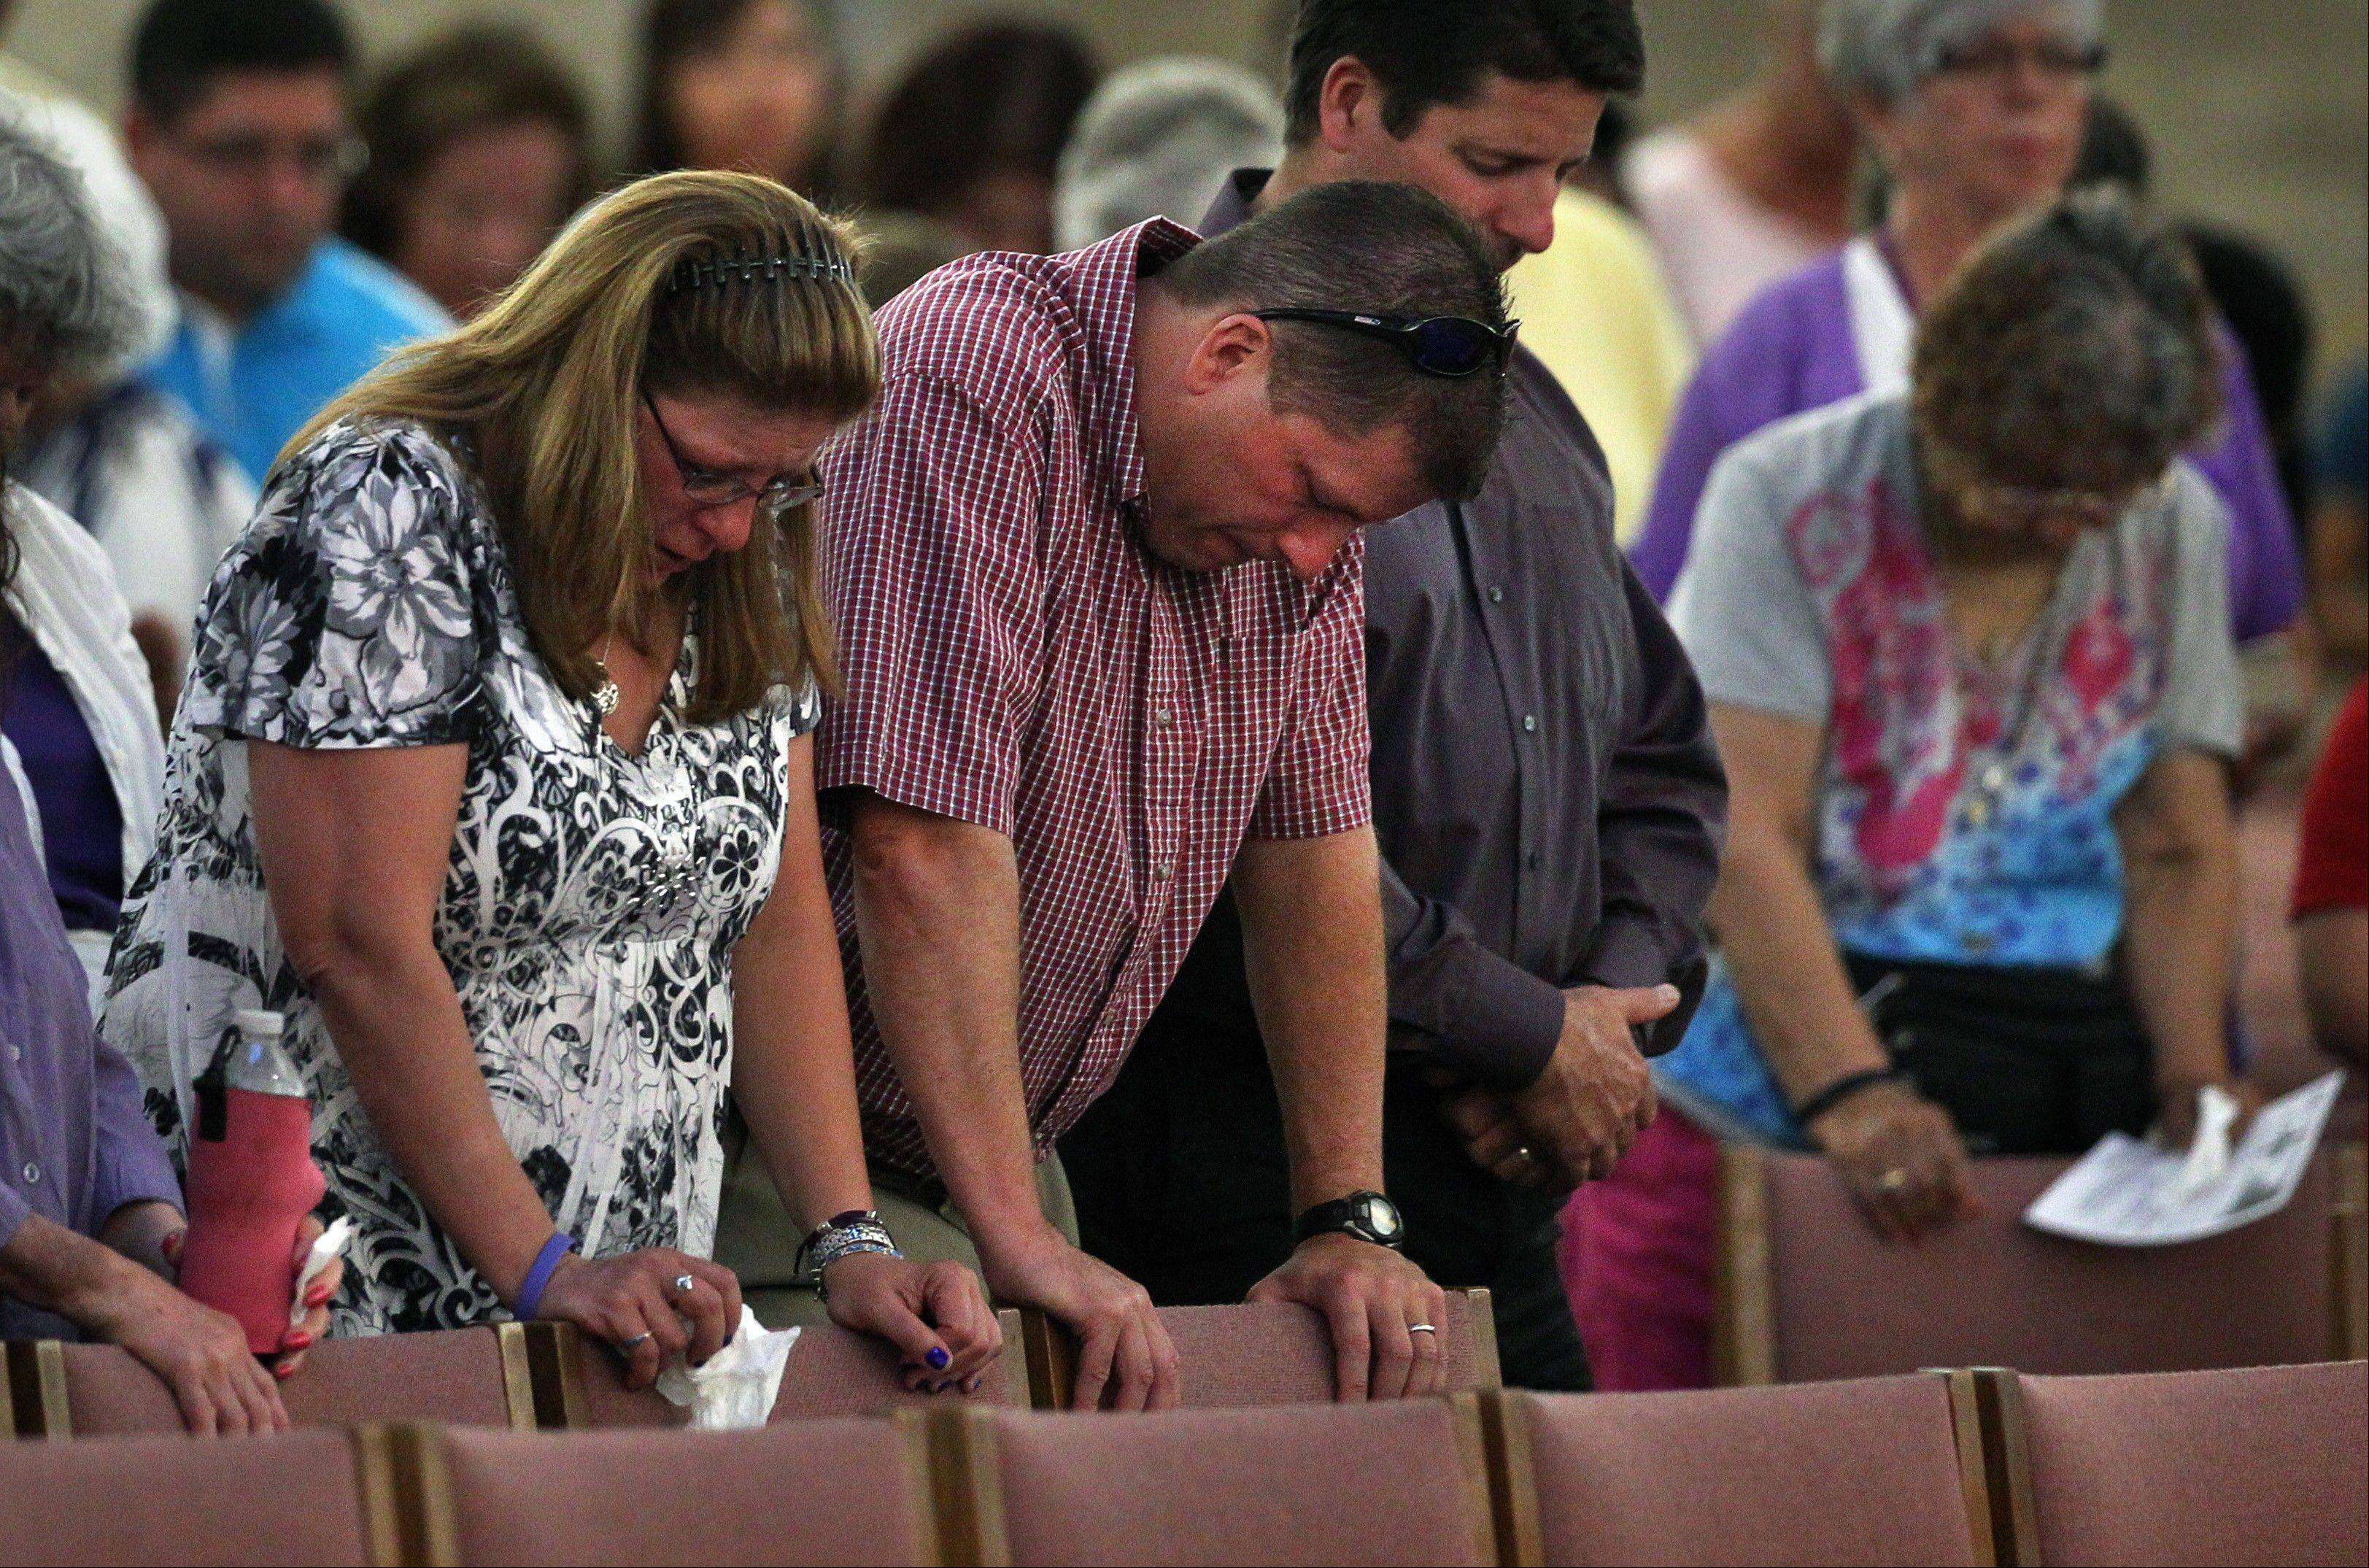 Associated PressWorshippers attend a memorial mass held for supporters and families of those killed in the Aurora movie theater shootings, at St. Michael the Archangel Catholic Church, in Aurora, Colo., on Friday July 19. Saturday, July 20, marks one year since the theater killing rampage left 12 dead and 70 wounded.